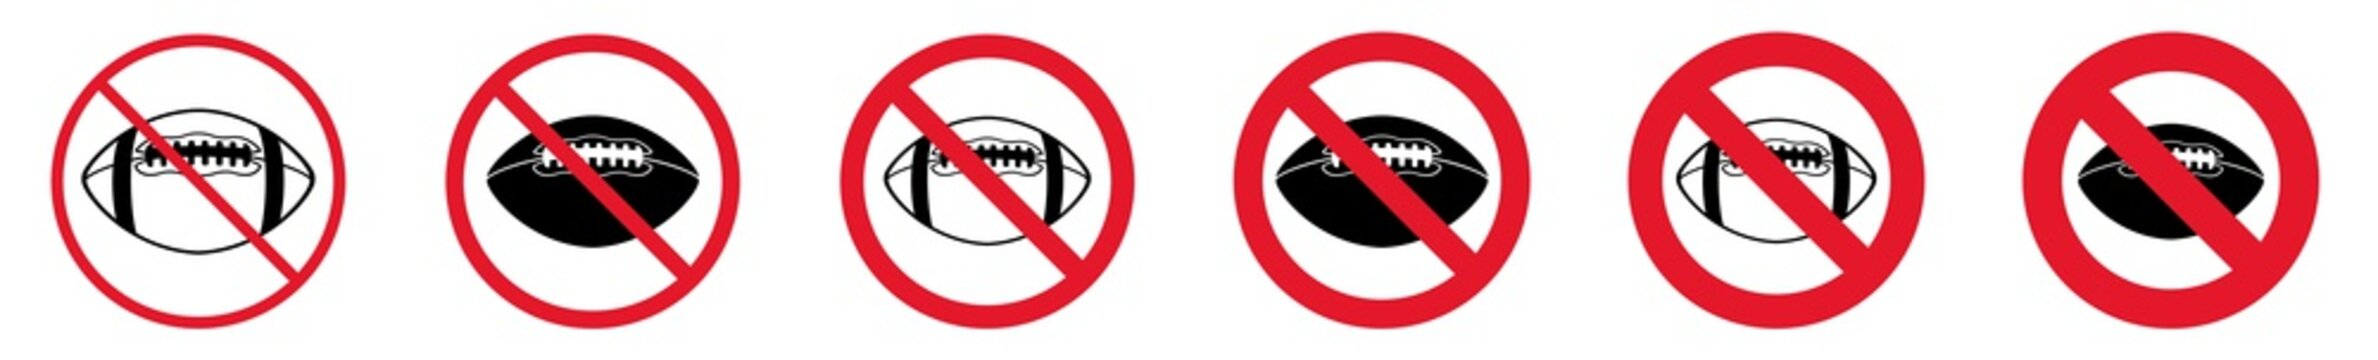 Prohibition Sign Football Forbidden Ball Icon Set   American Football Prohibition Signs Prohibited Vector Illustration Logo   American Football Prohibition Sign Isolated Collection